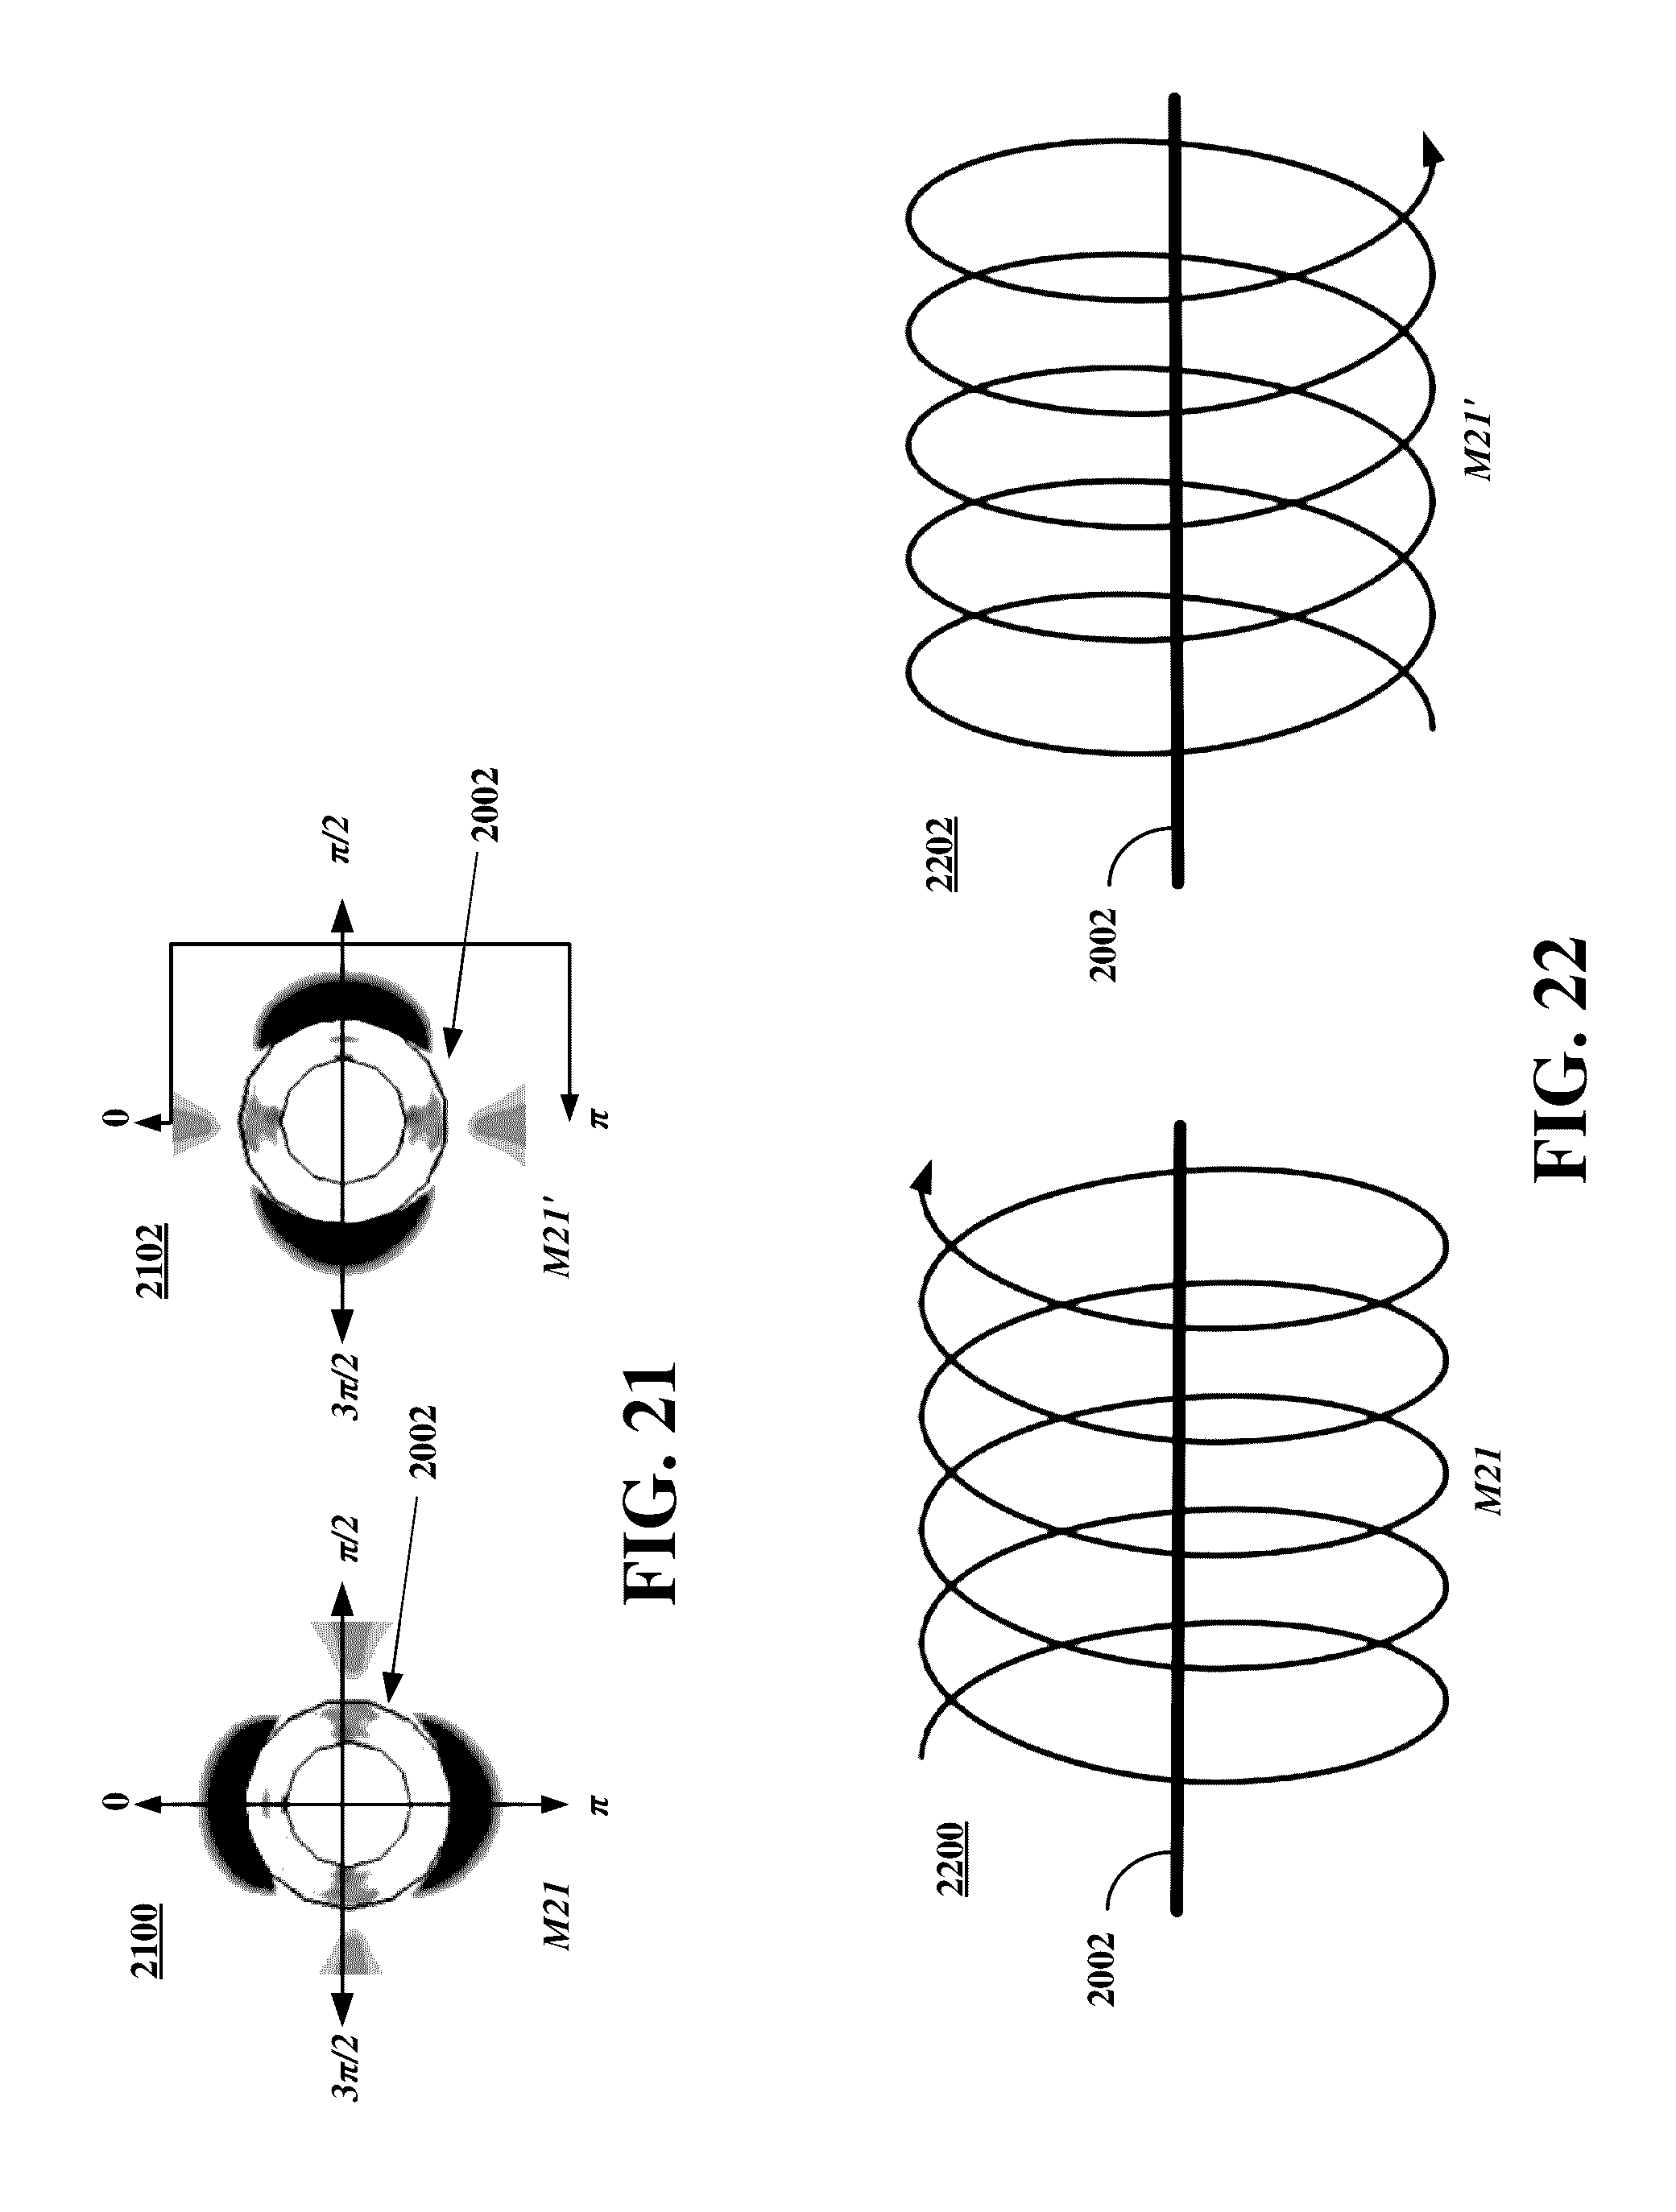 Us9531427b2 Transmission Device With Mode Division Multiplexing The Radio Builder Mw Receiverreflexive Radio2t And Methods For Use Therewith Google Patents